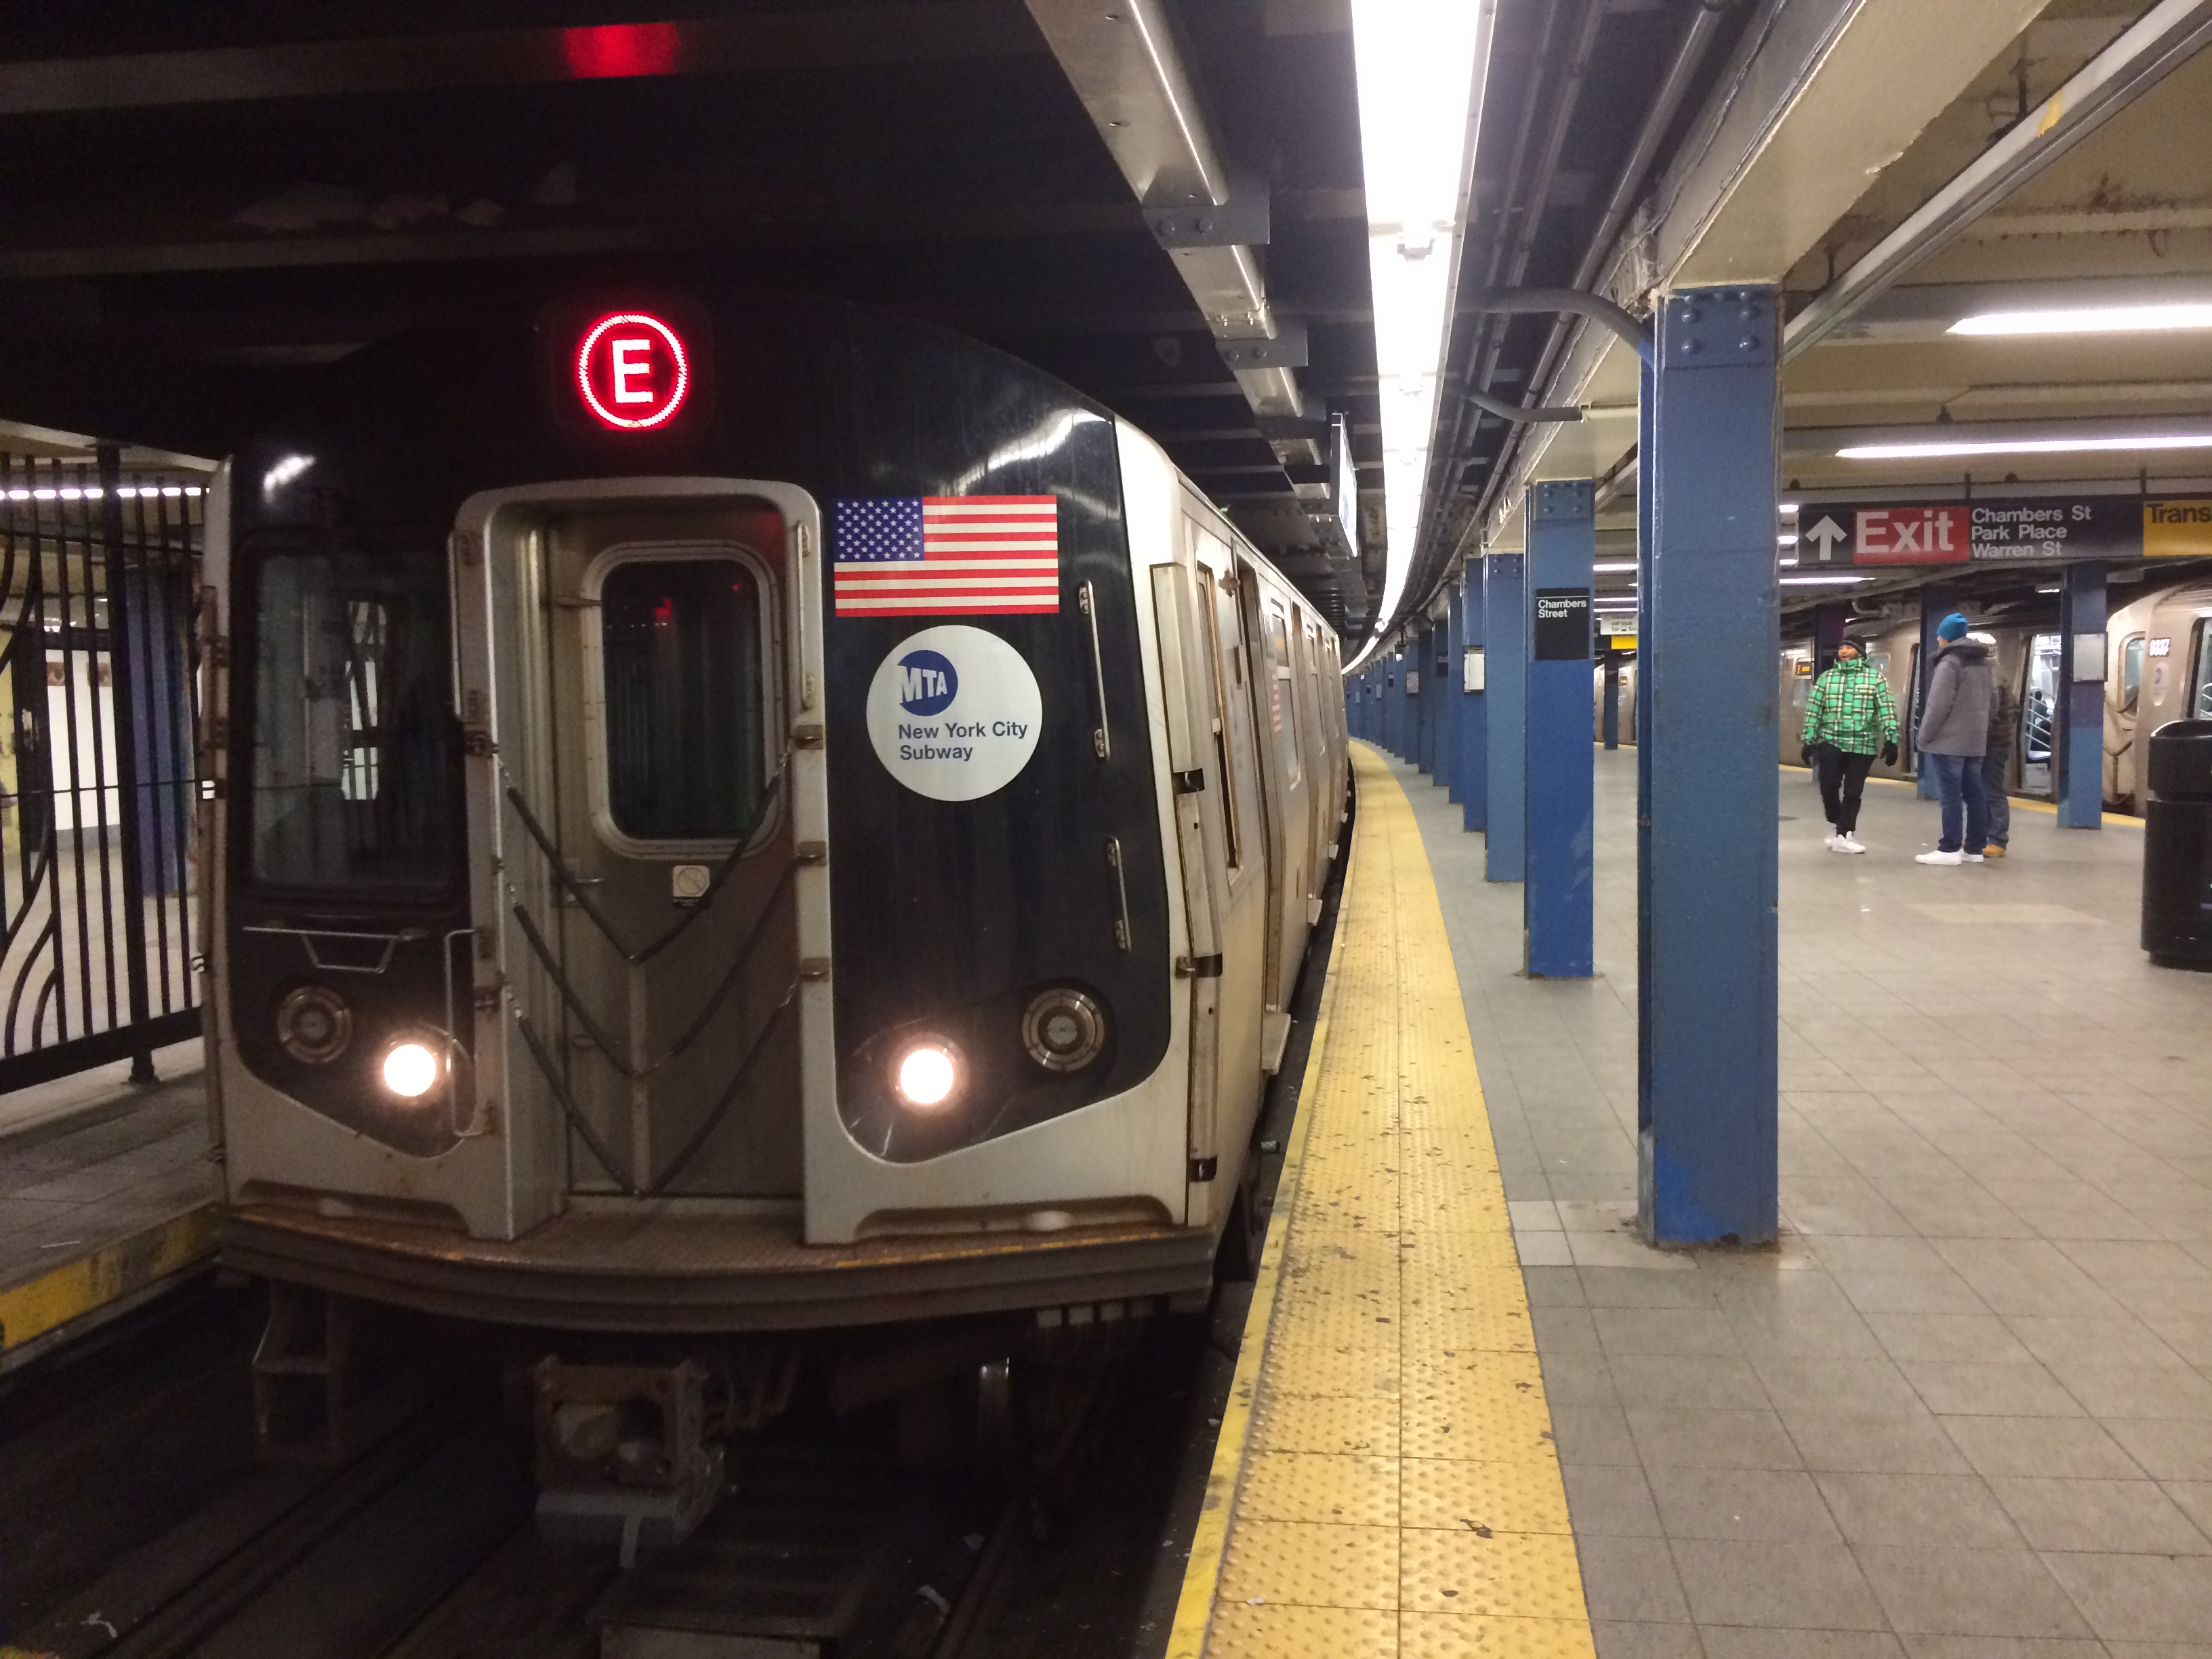 E train arrives at World Trade Center subway station .